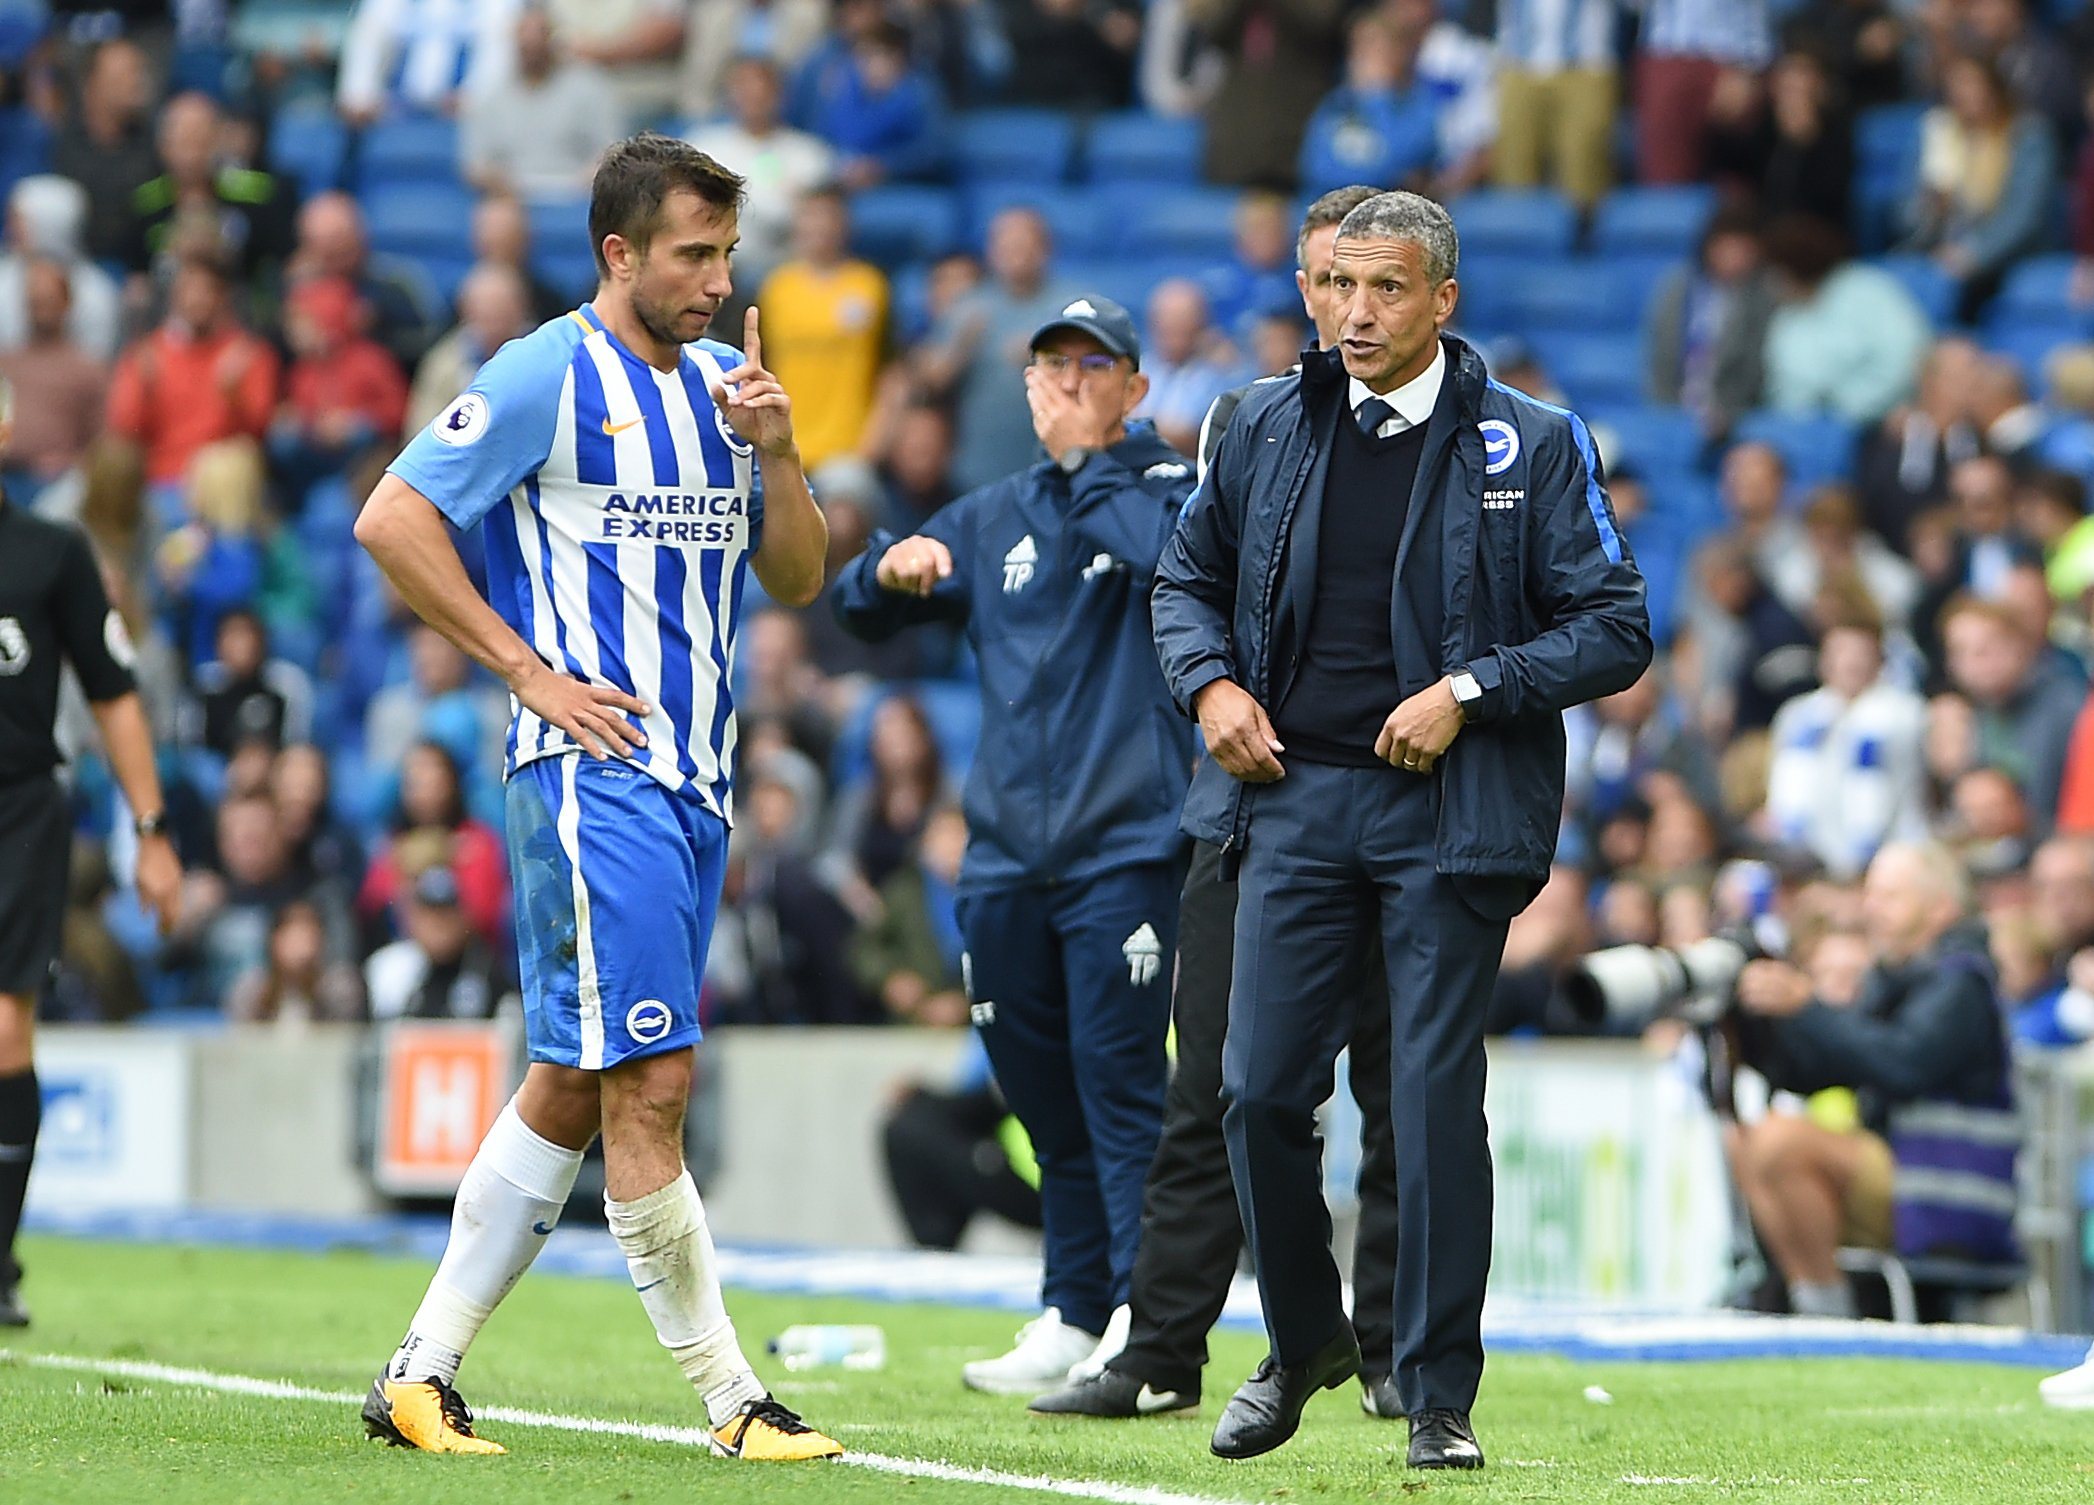 Chris Hughton is disappointed to see Frank de Boer axed after just four games